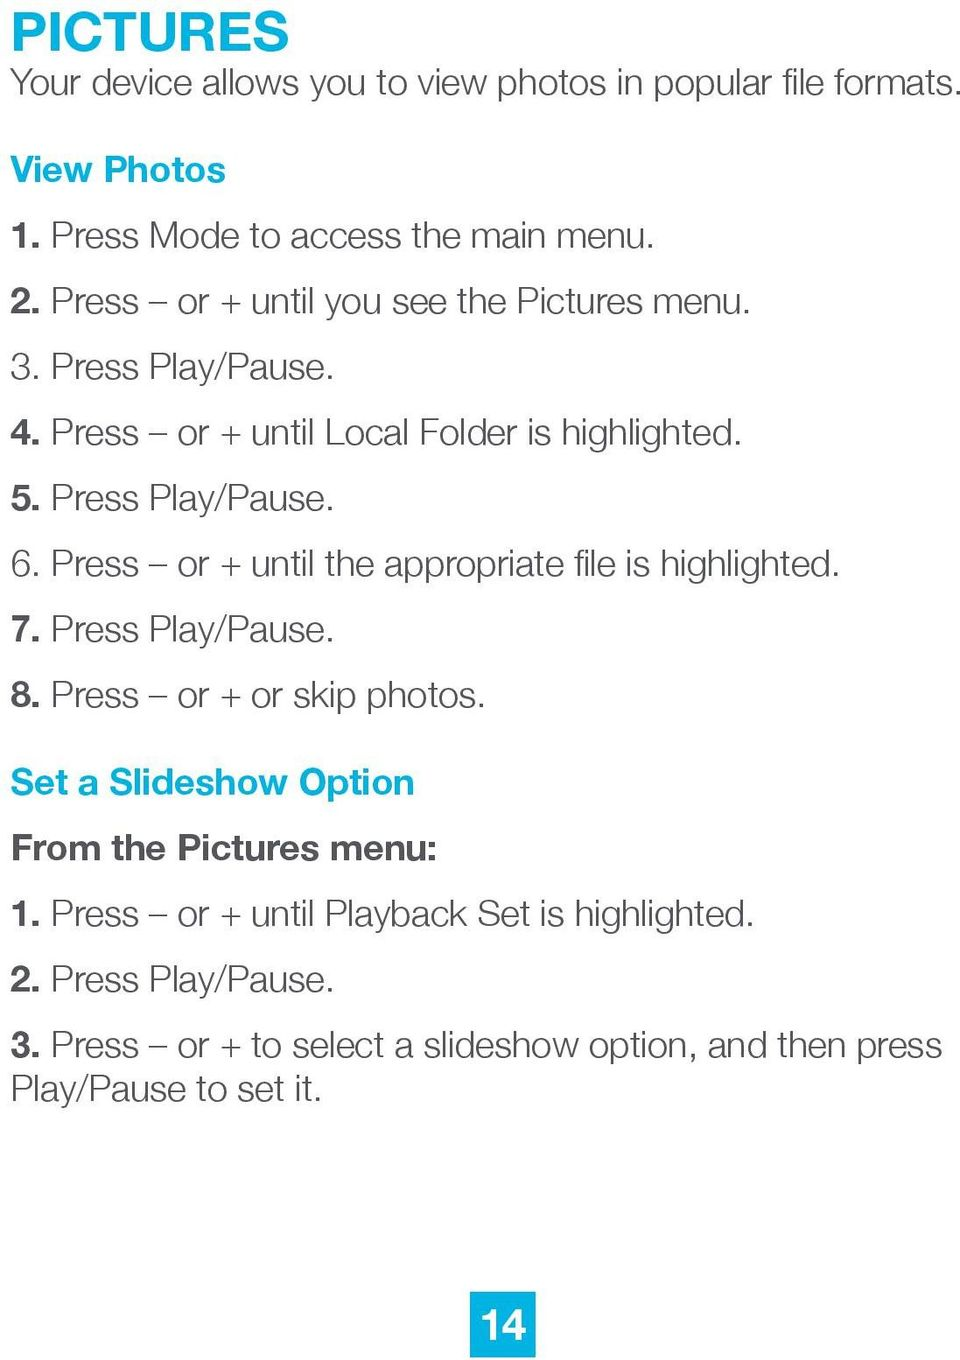 Press or + until the appropriate file is highlighted. 7. Press Play/Pause. 8. Press or + or skip photos.